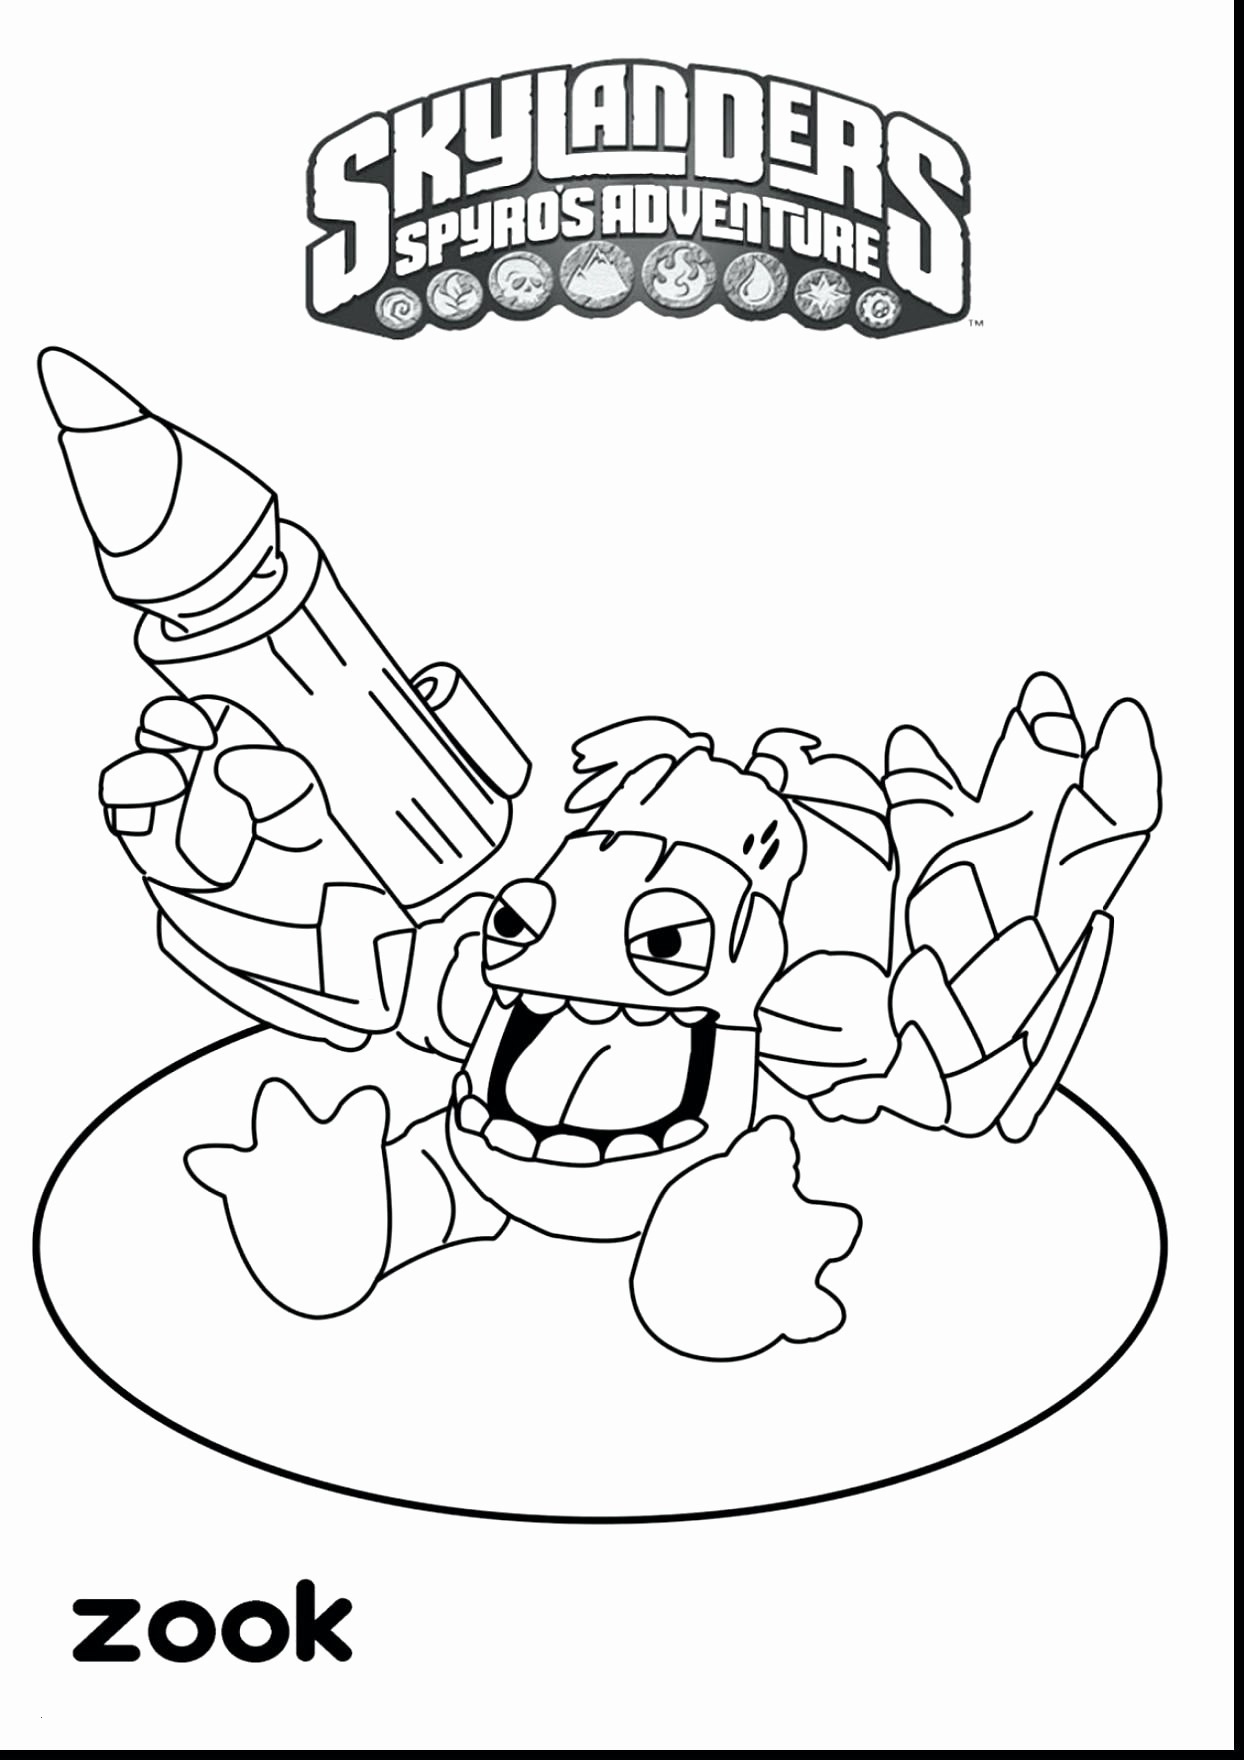 hillary clinton coloring pages Download-Shimmer and Shine Coloring Pages Hillary Clinton Coloring Page Luxury Dance Coloring Pages Elegant 8-r